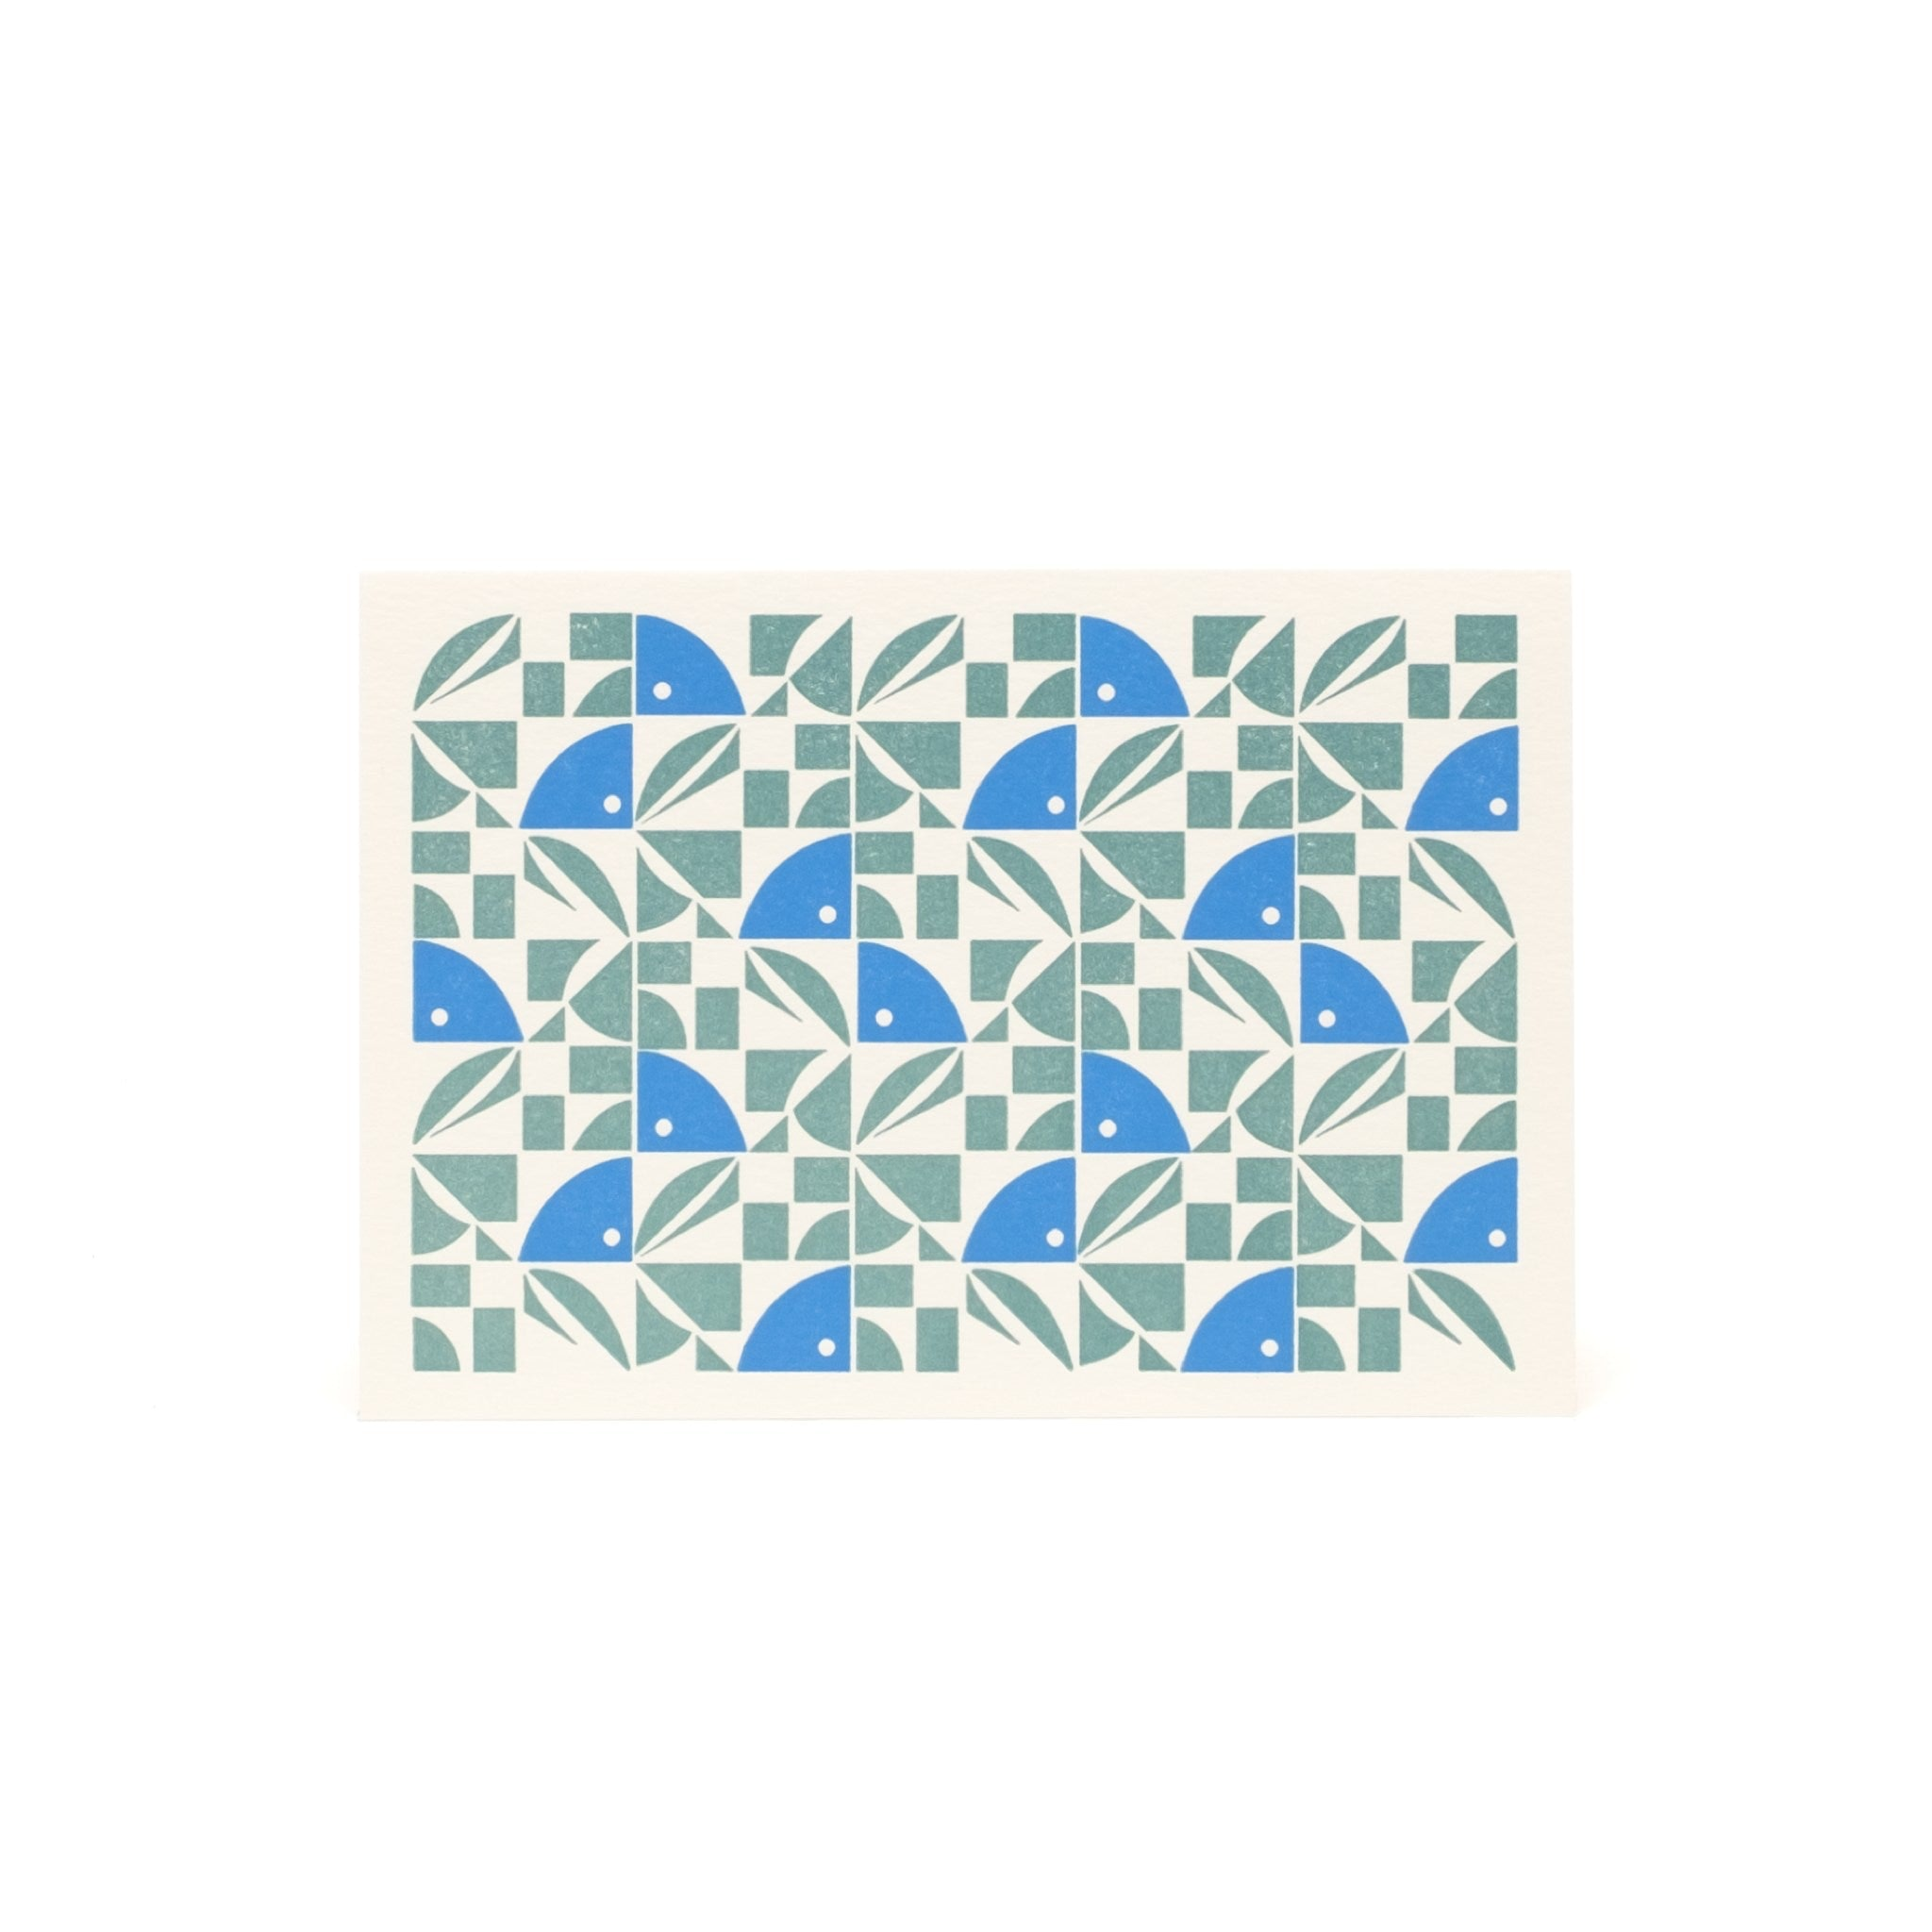 Bloom Letterpress Card - Blue and Green by Esme Winter